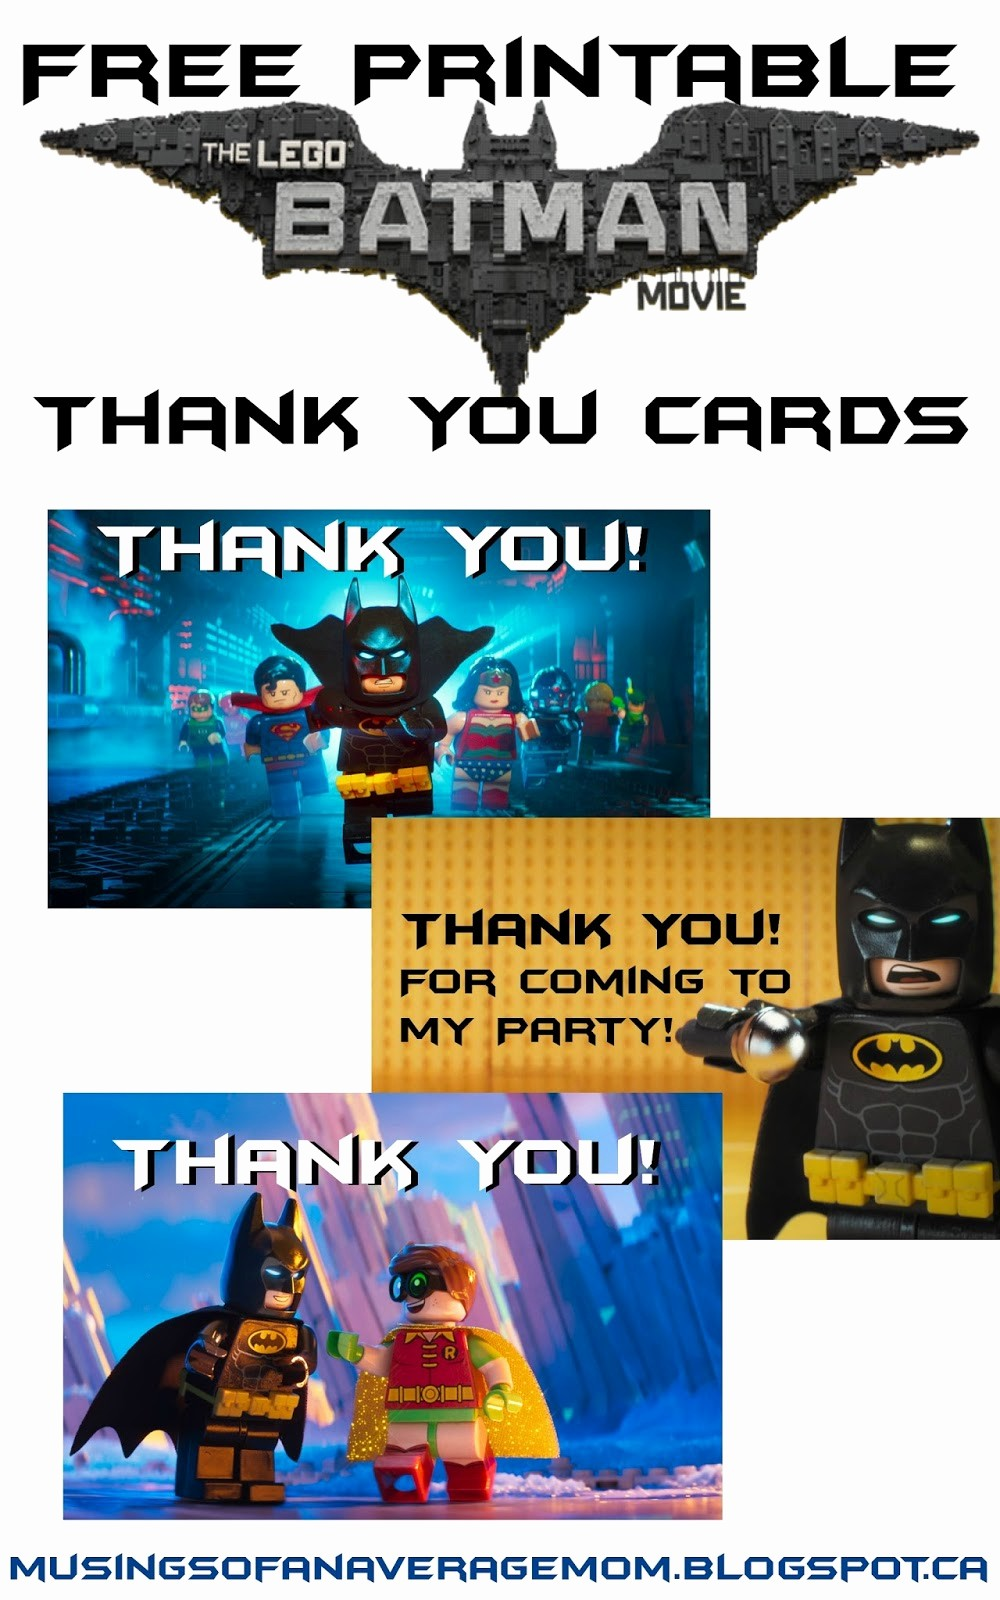 Free Printable Thank You Certificates Elegant Musings Of An Average Mom Everything You Need for A Lego